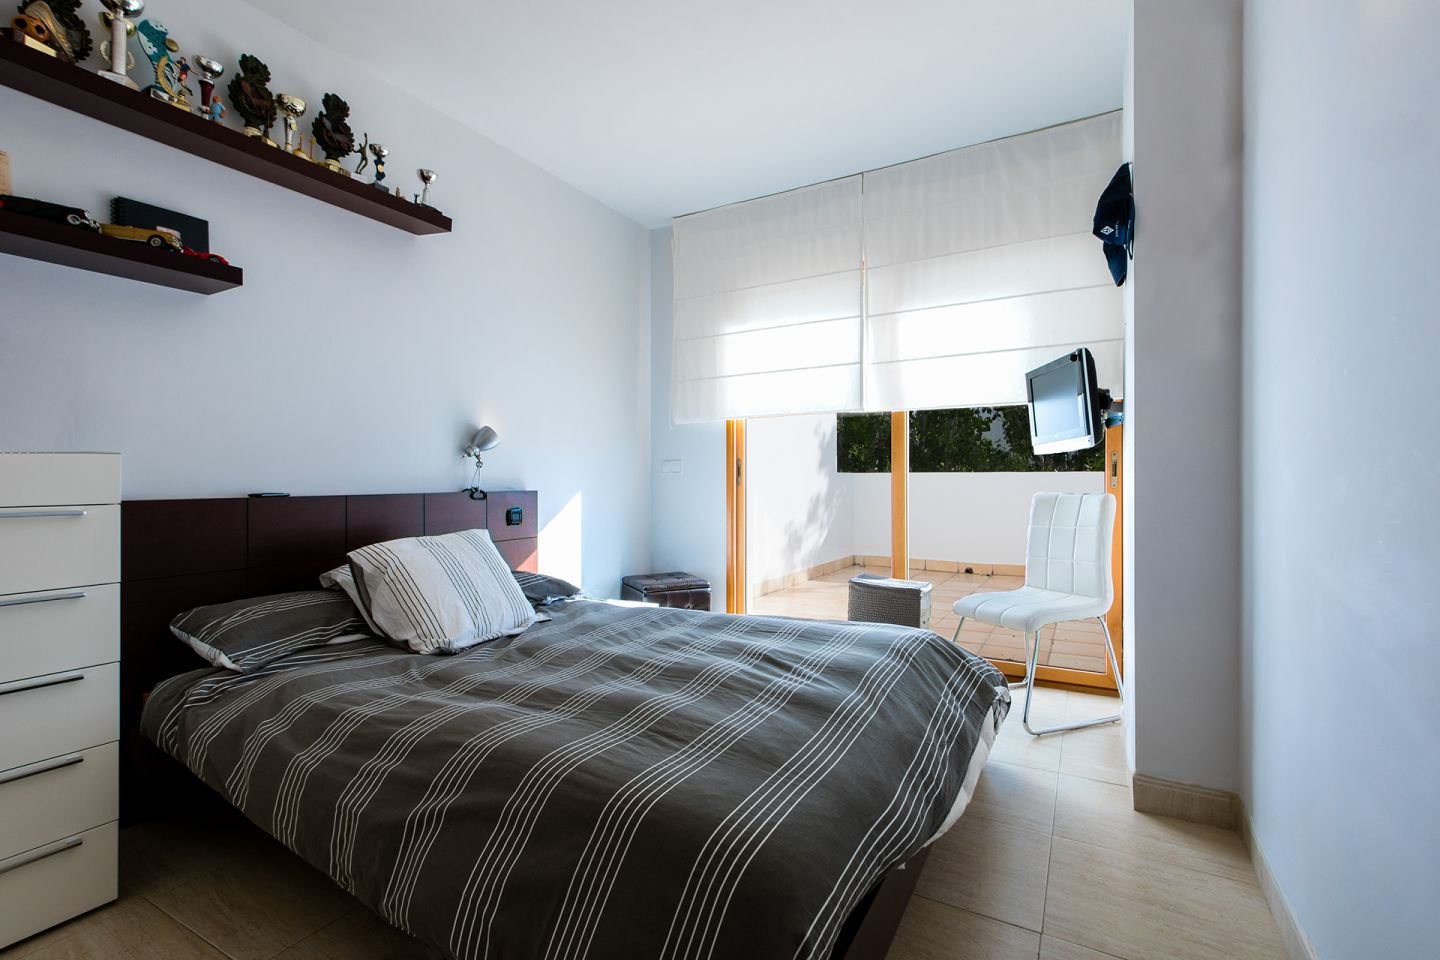 4 Bed Semidetached House for sale in PUERTO POLLENSA 12